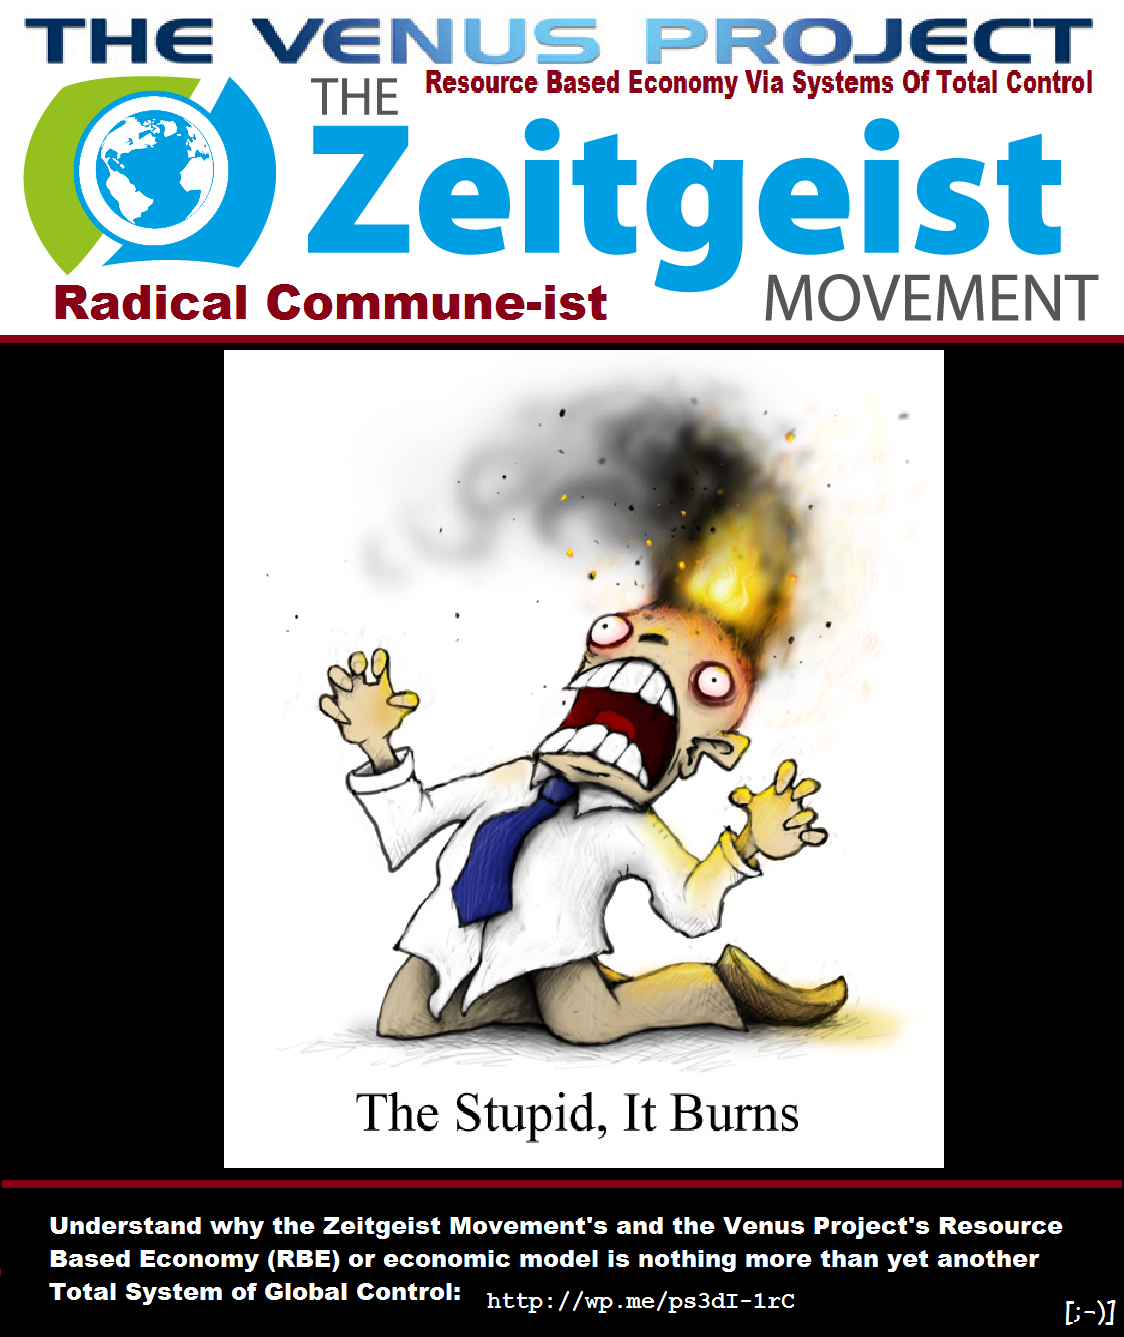 The Zeitgeist Radical Commune-ist Movement I hope you have a RBE Permit for that Resource